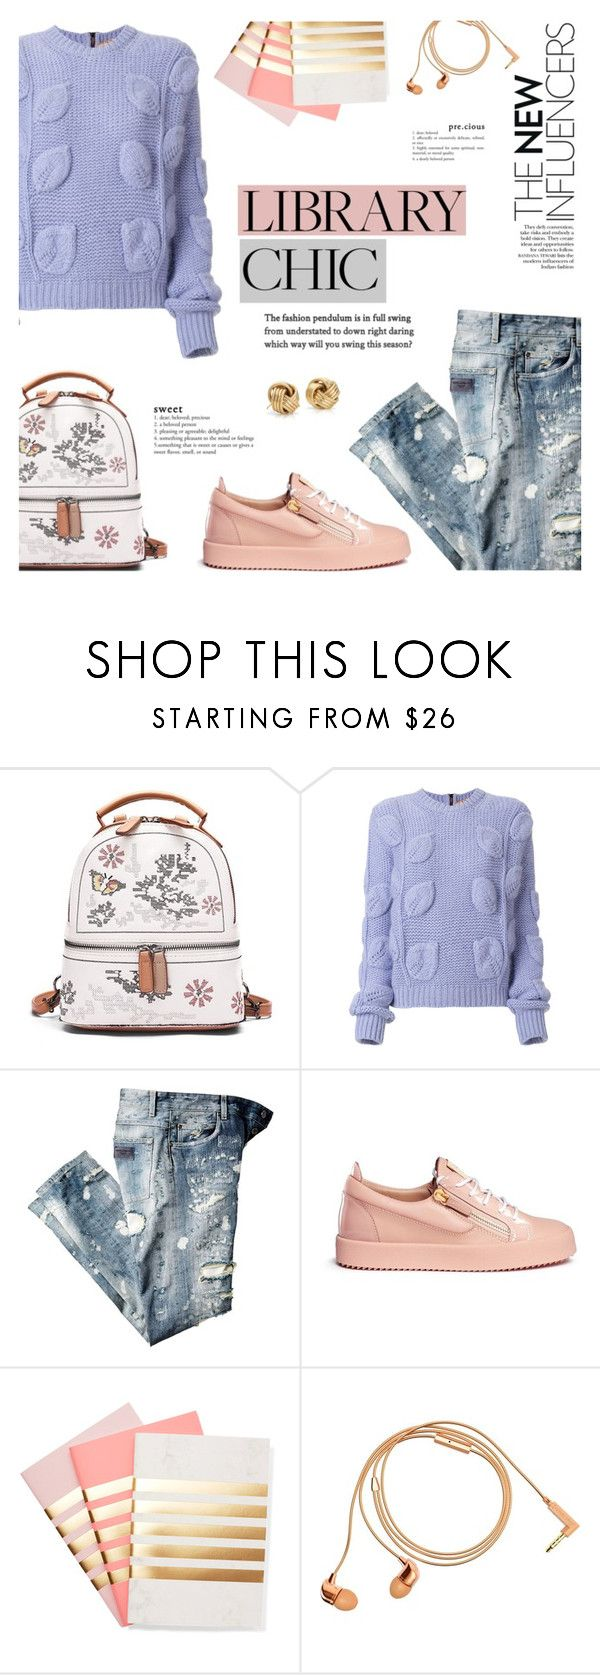 """Work Hard, Play Hard: Finals Season"" by milica1940 ❤ liked on Polyvore featuring N°21, Giuseppe Zanotti, StudioSarah, Happy Plugs and Blue Nile"